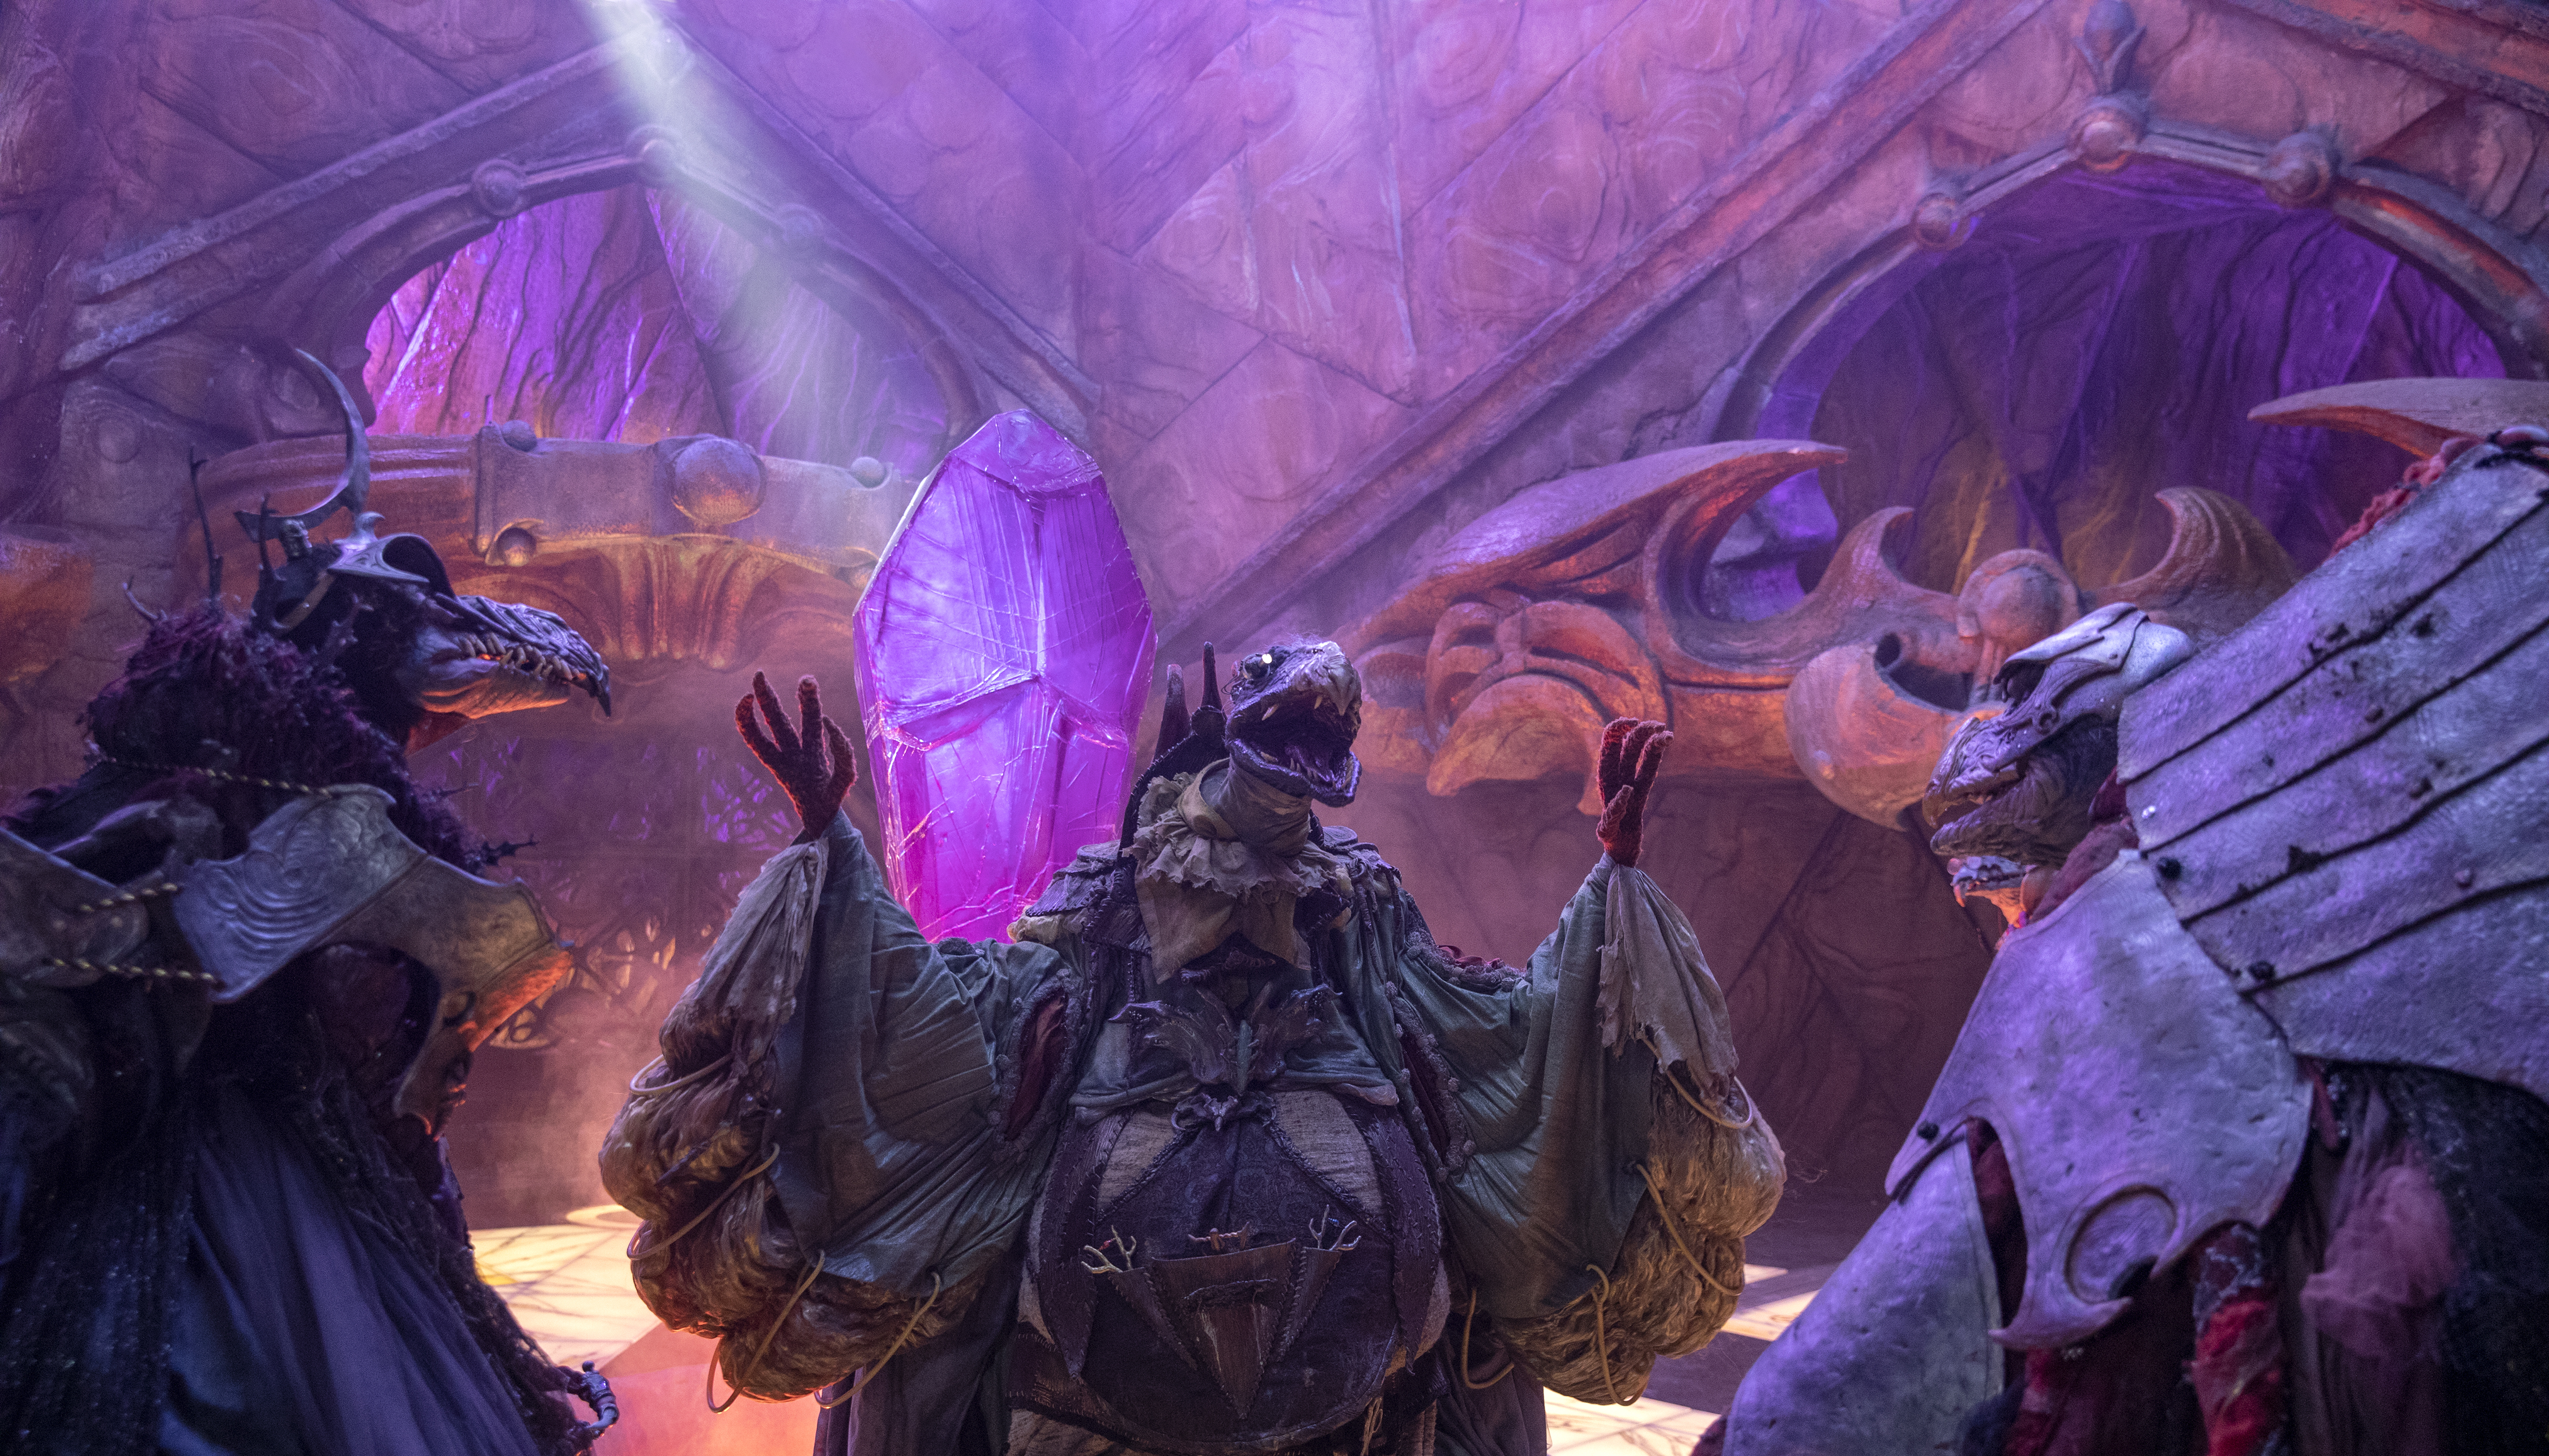 'The Dark Crystal: Age of Resistance' Canceled After One Season at Netflix